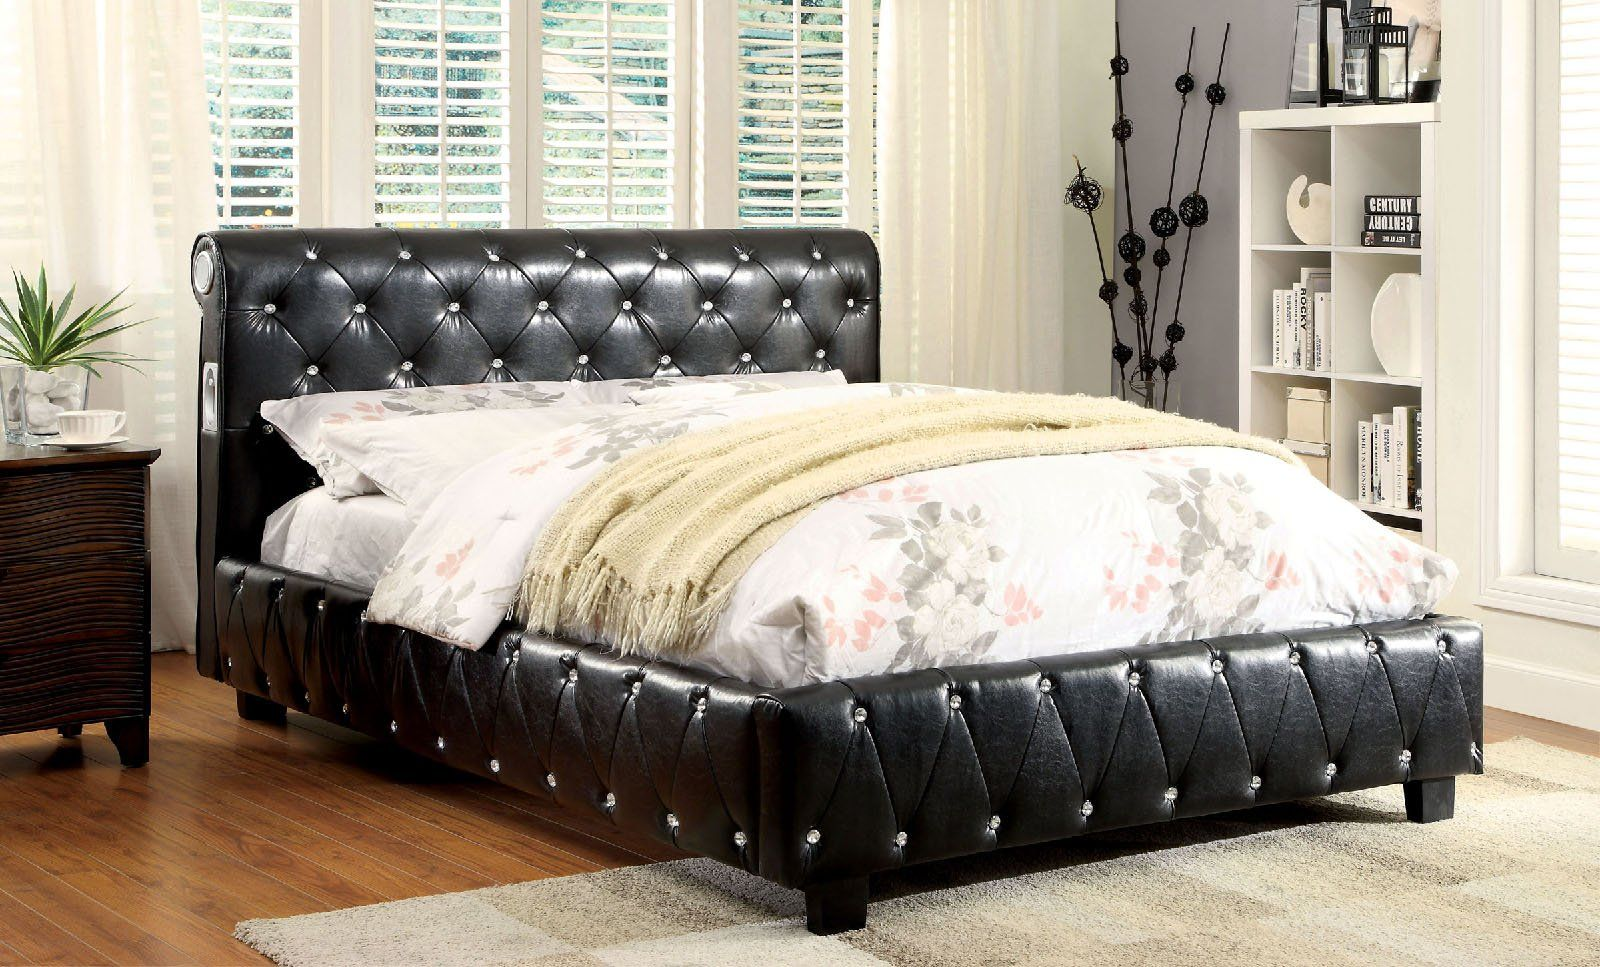 Delicieux ID # IMP CM7056SV Juilliard Collection Technology Invades The Bedroom In  This Unique Contemporary Bed